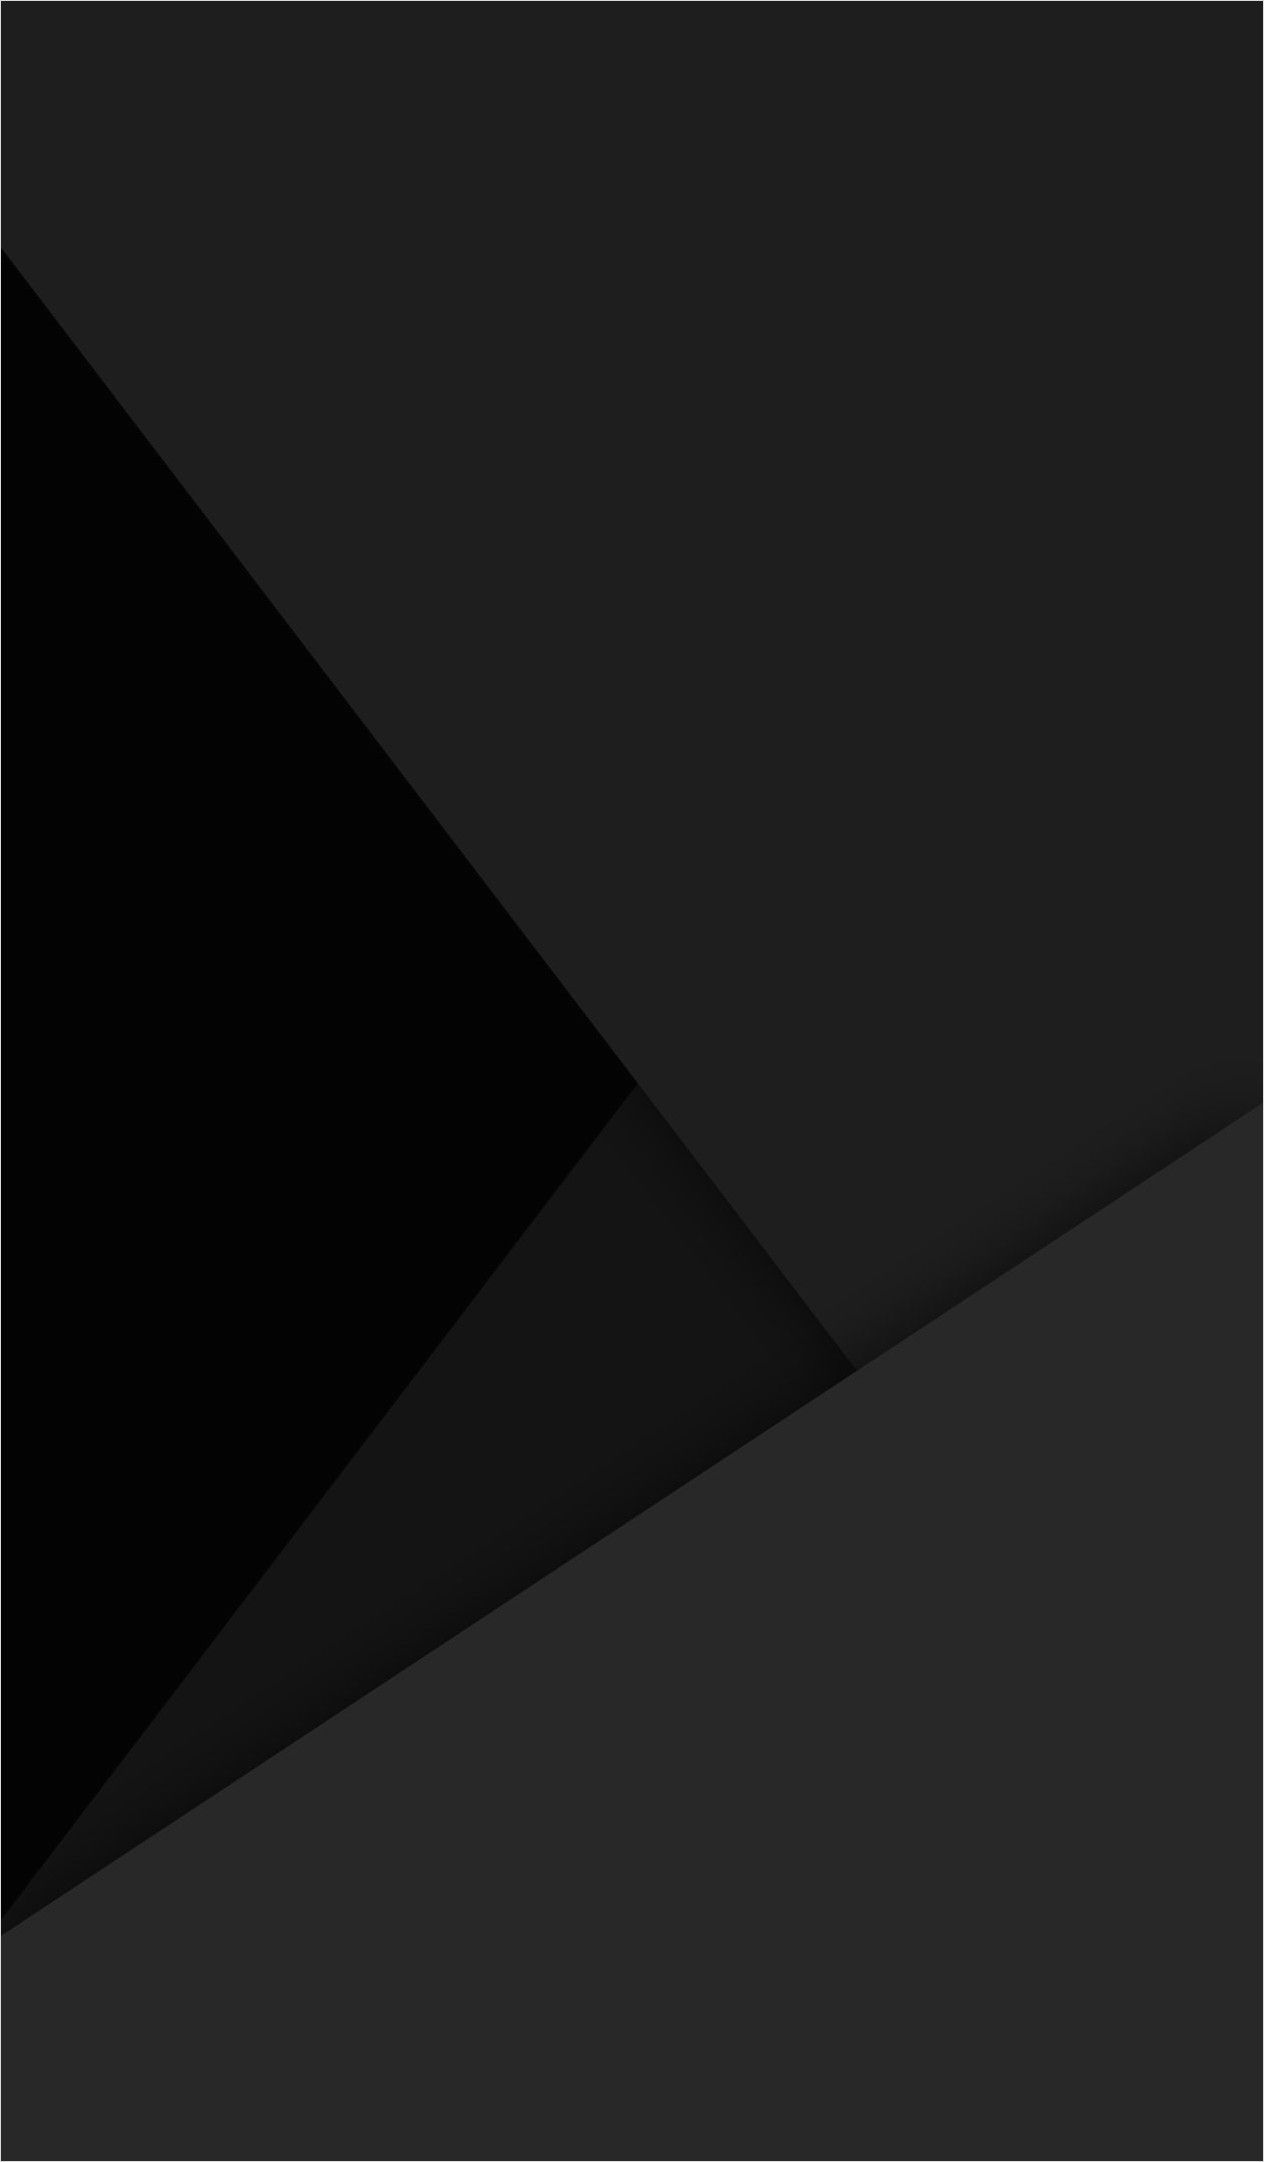 4k Dark And Gray Forgiveness Wallpaper In 2020 Pure Black Wallpaper Black Wallpaper Black Phone Wallpaper